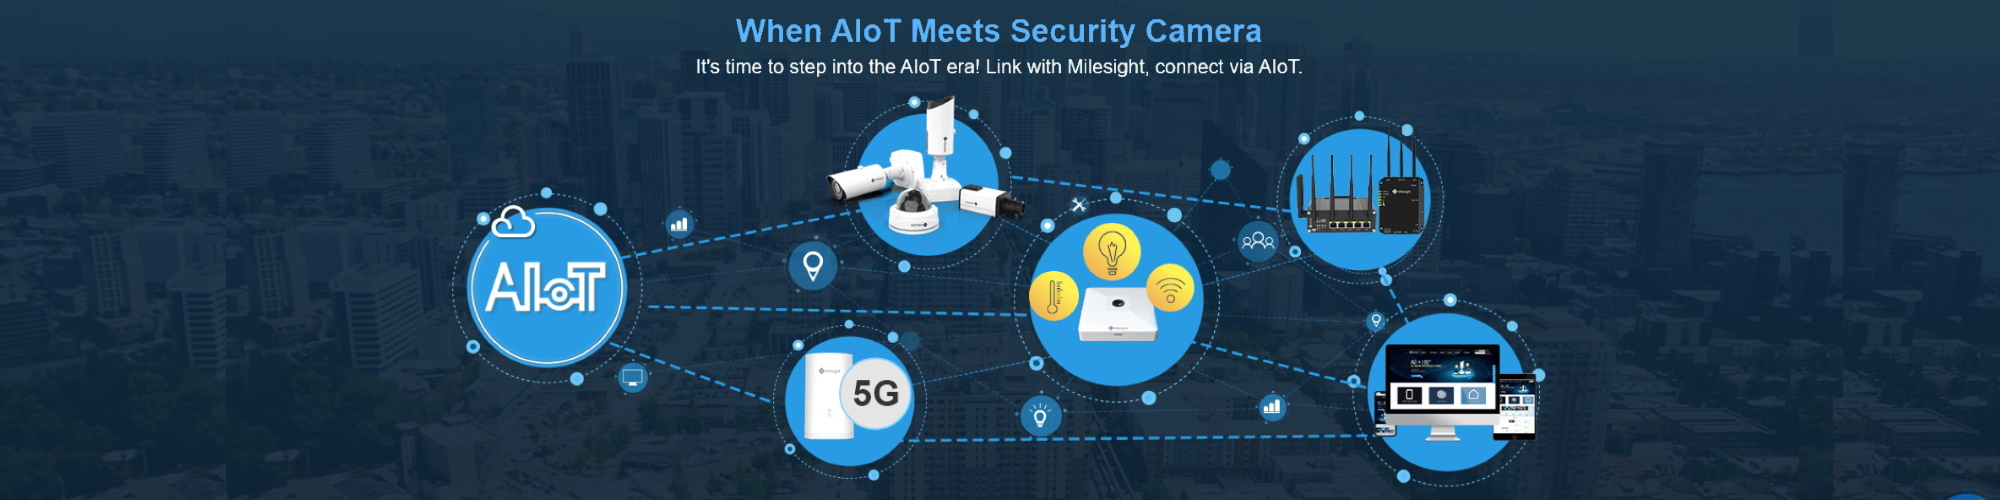 Milesight_AIoT meets Security Camera2000